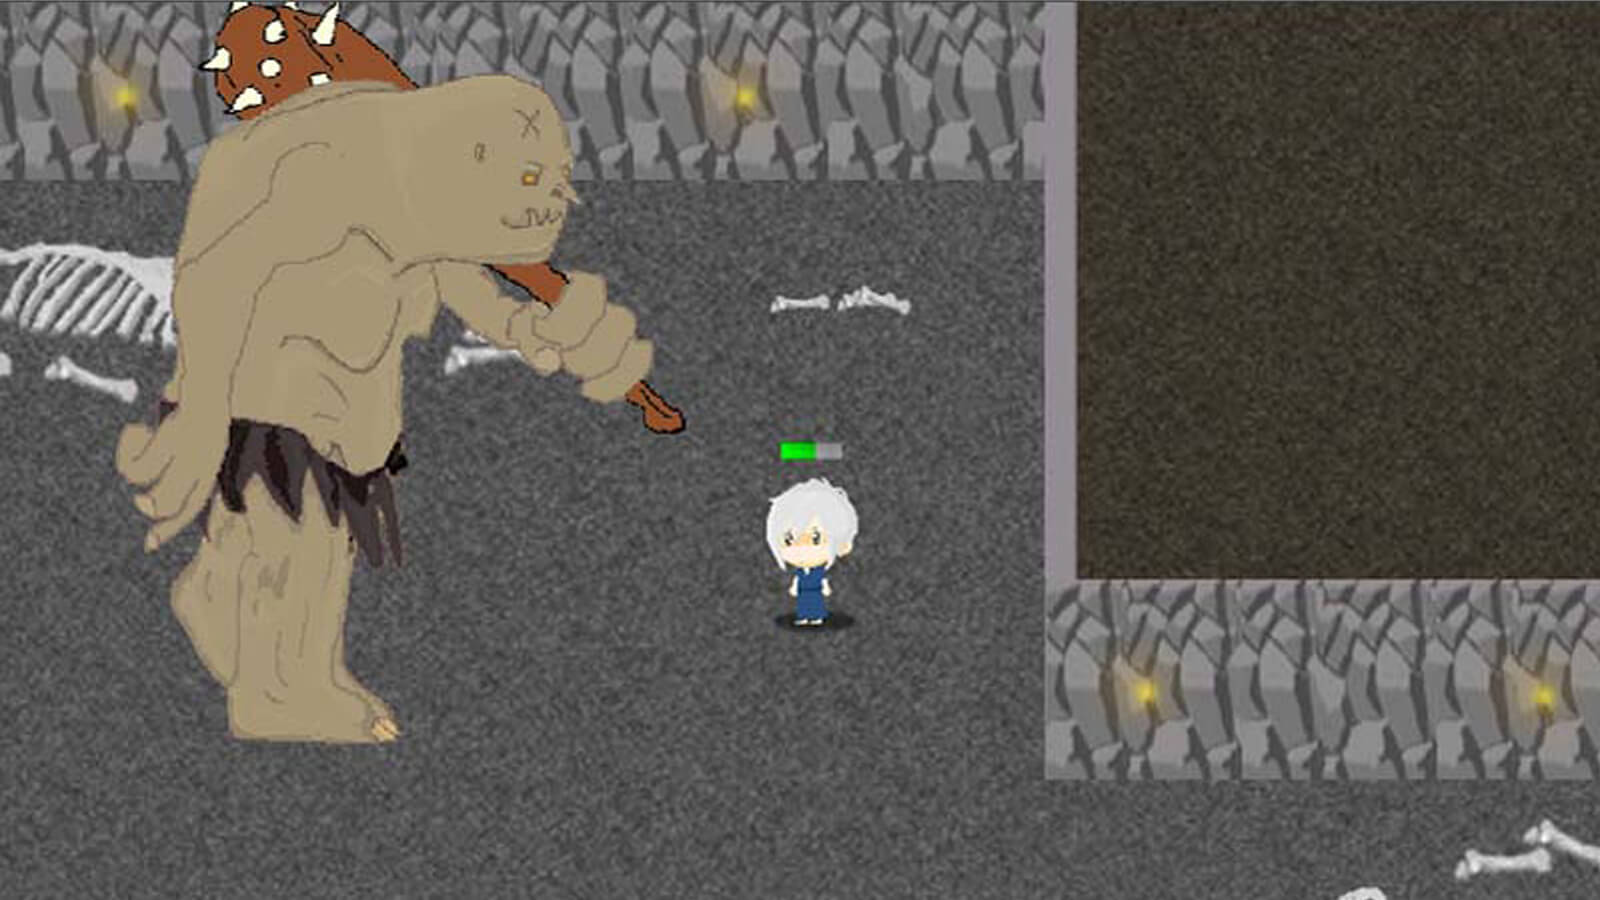 A large brown ogre carrying a spiked club stands next to the player's character in a torch-lit dungeon